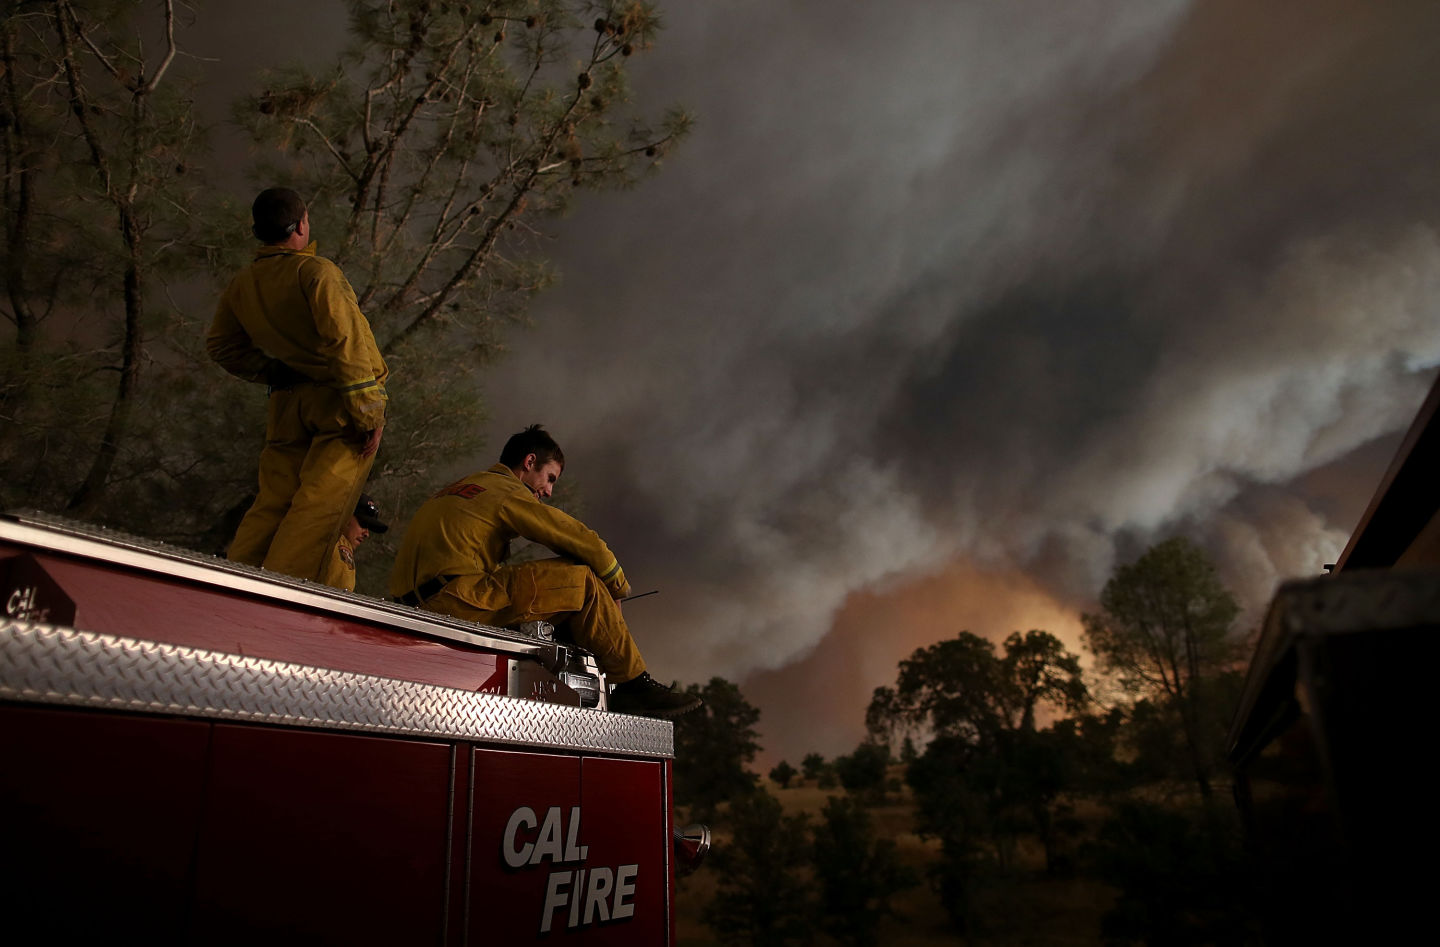 Cal Fire firefighters monitor the progress of the Rocky Fire on Aug. 1, 2015 near Clearlake, California. Justin Sullivan/Getty Images